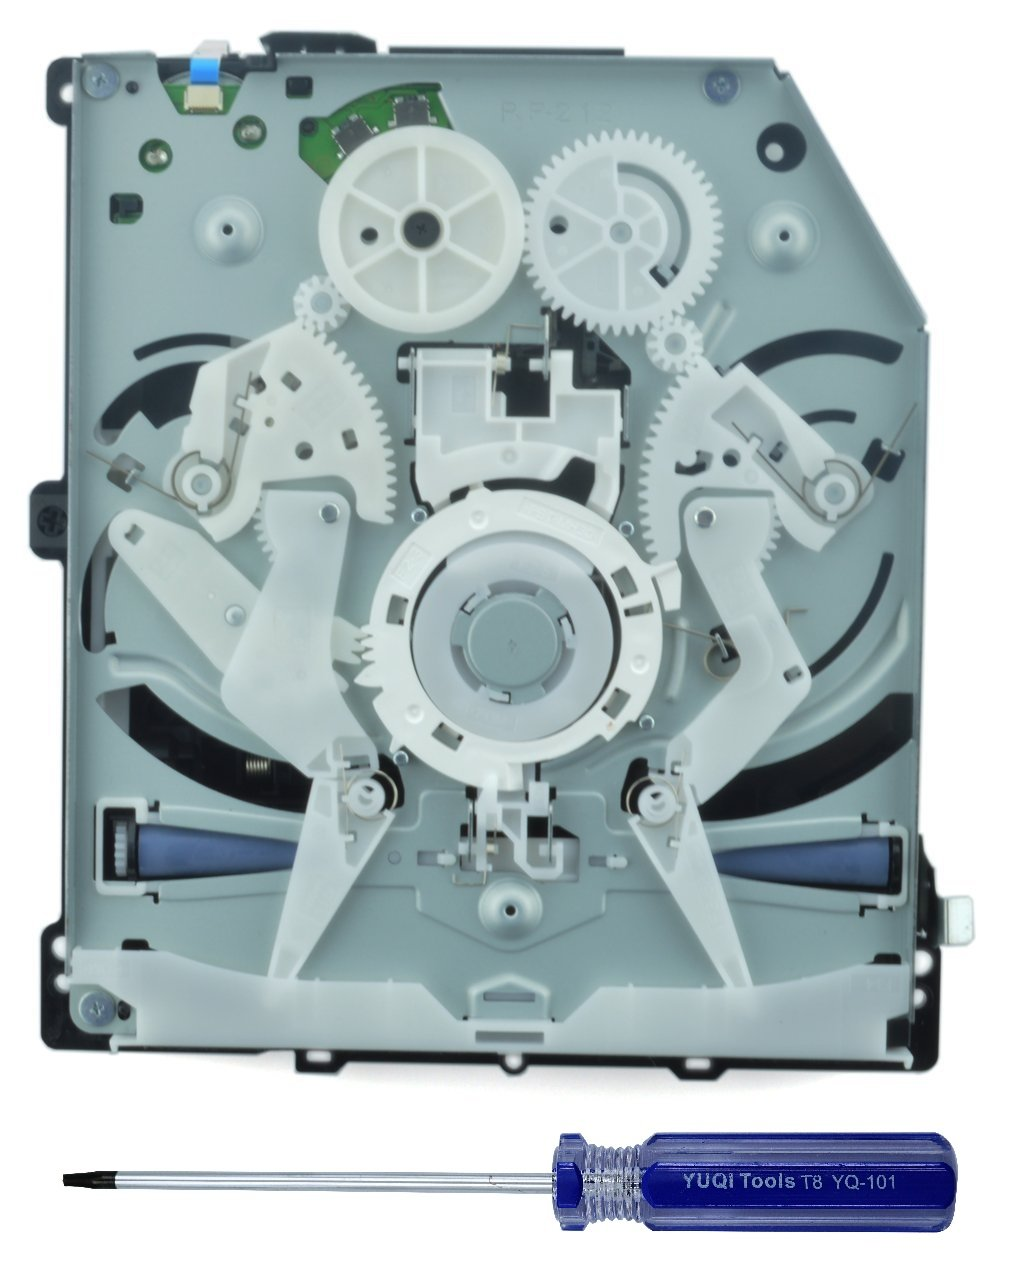 Sony OEM PS4 Blu-ray DVD Drive Replacement with BDP-020 BDP-025 Laser,  Circuit Board KES-490 KEM-490 KES-490A for CUH-1001A CUH-1115A CUH-10XXA